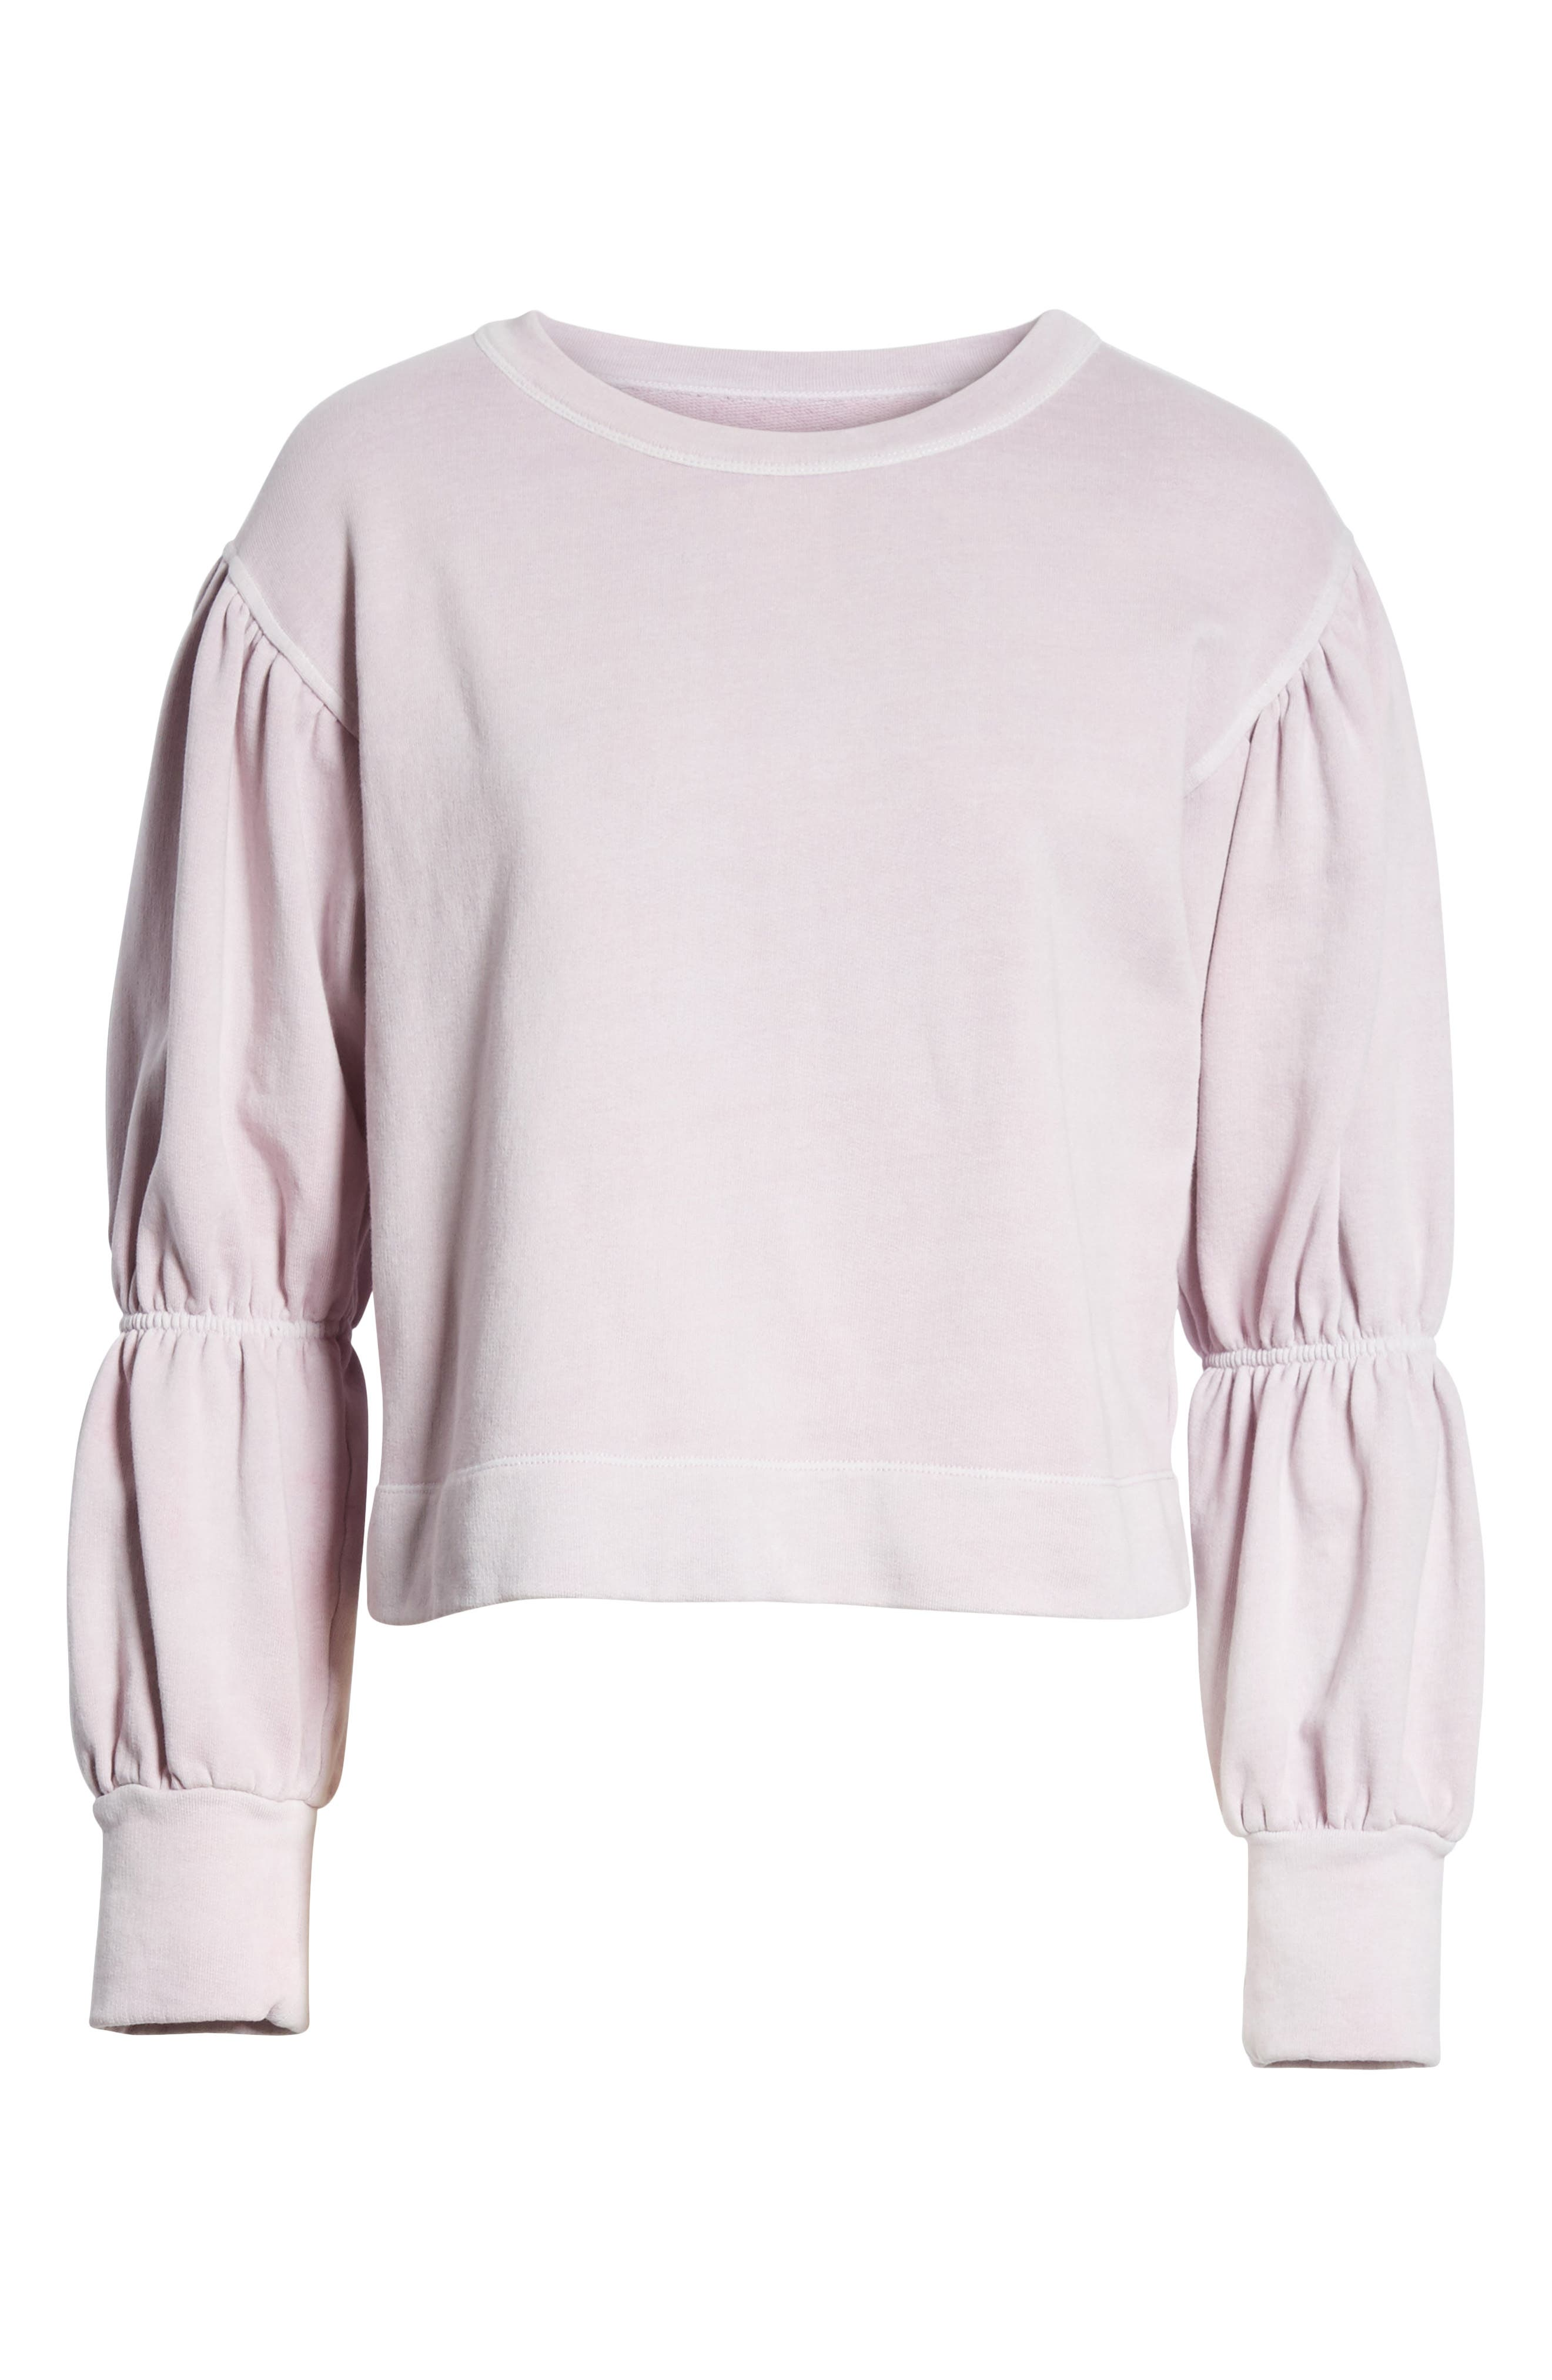 French Terry Pullover,                             Alternate thumbnail 6, color,                             Lilac Dust